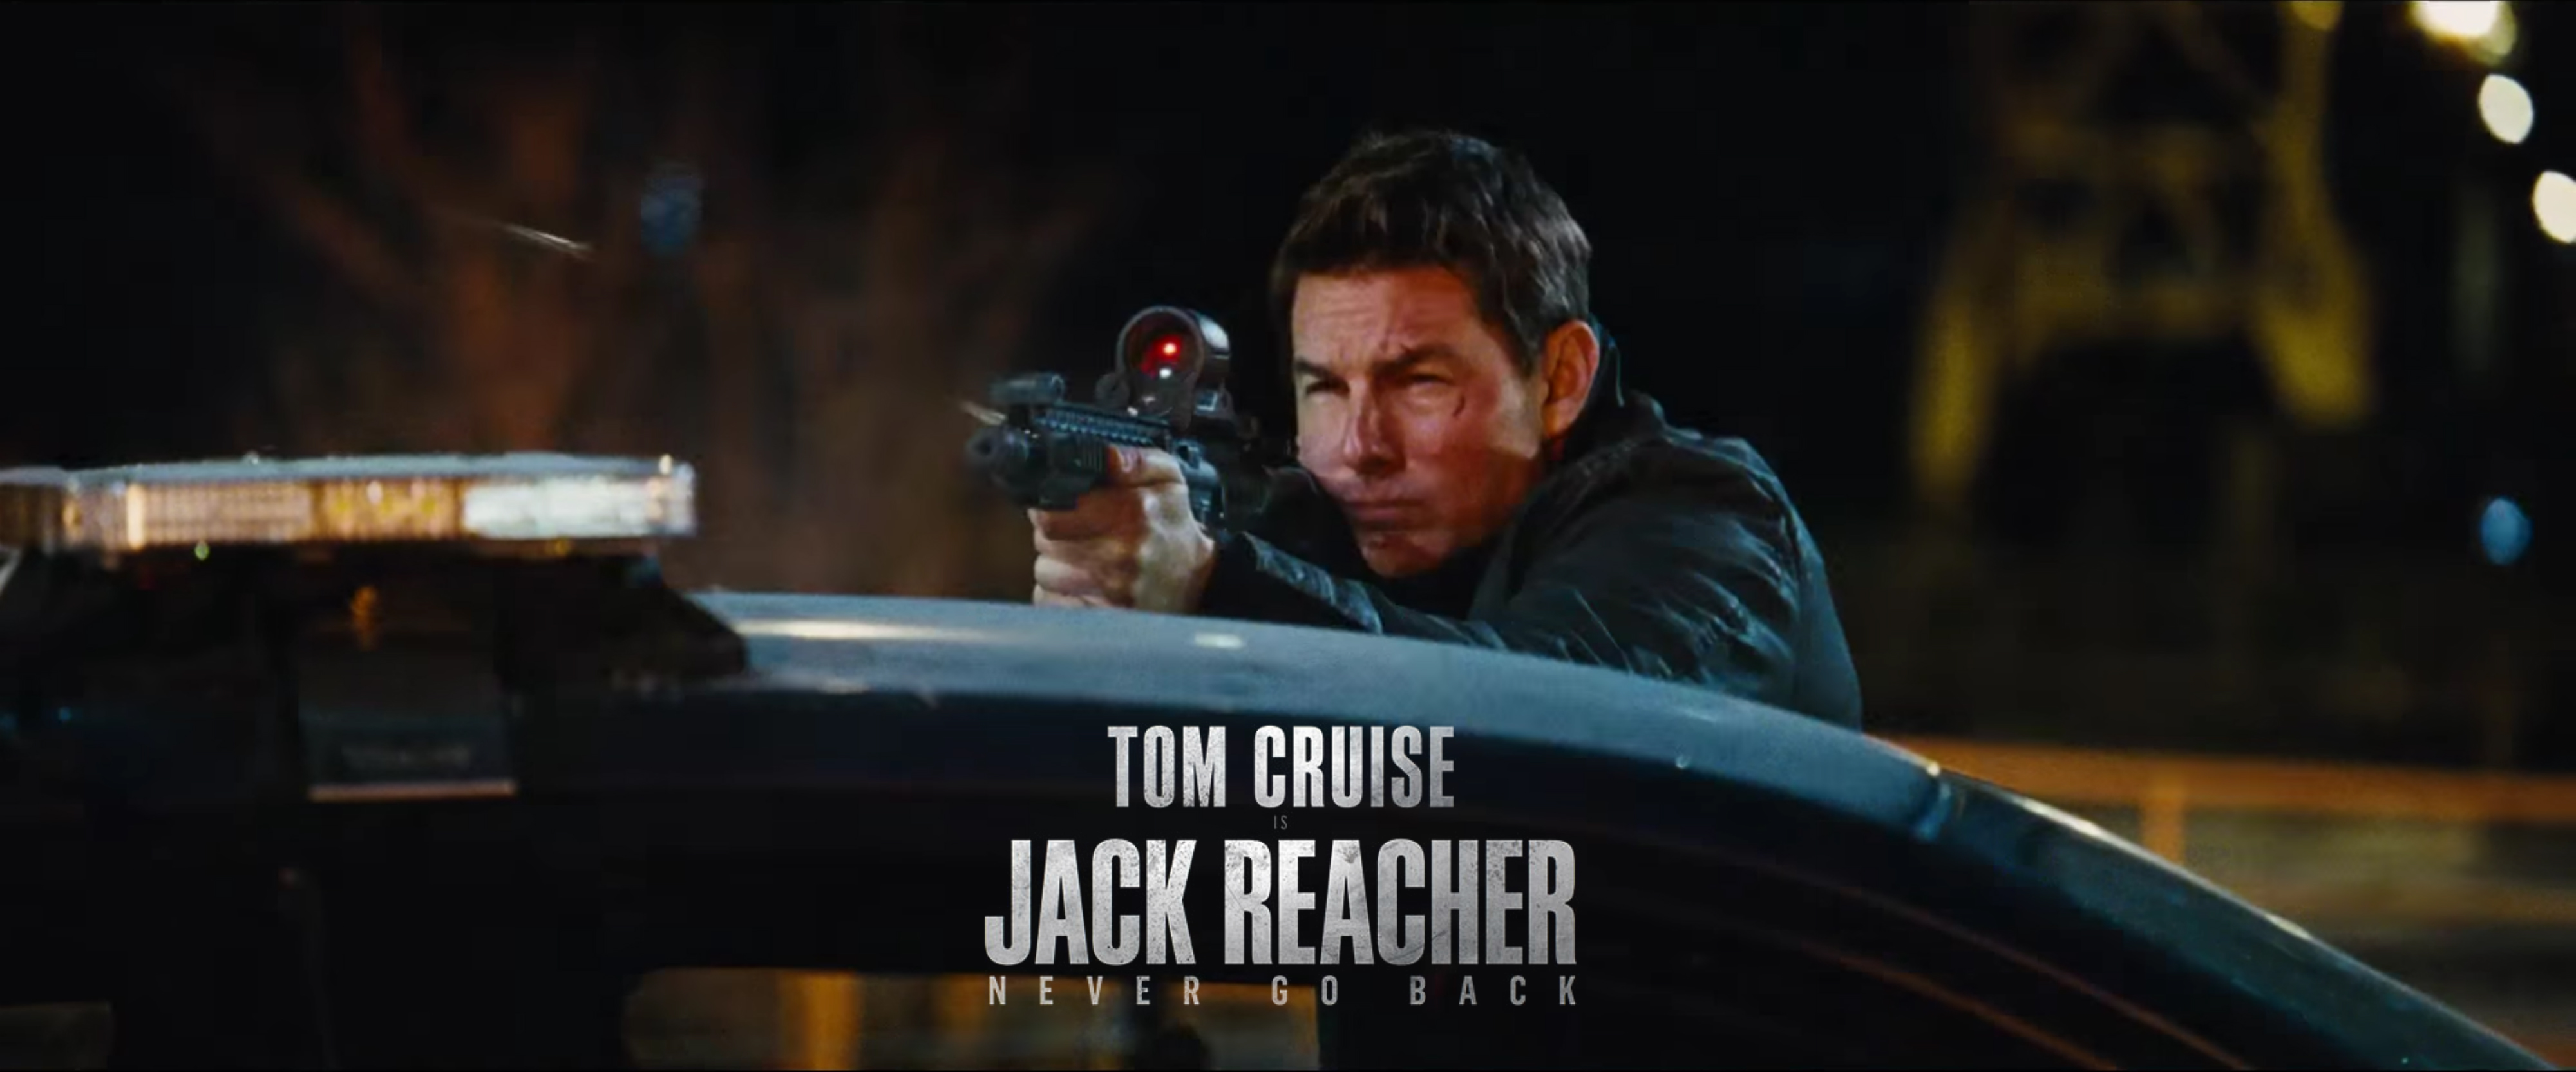 Jack Reacher: Never Go Back HD Wallpapers